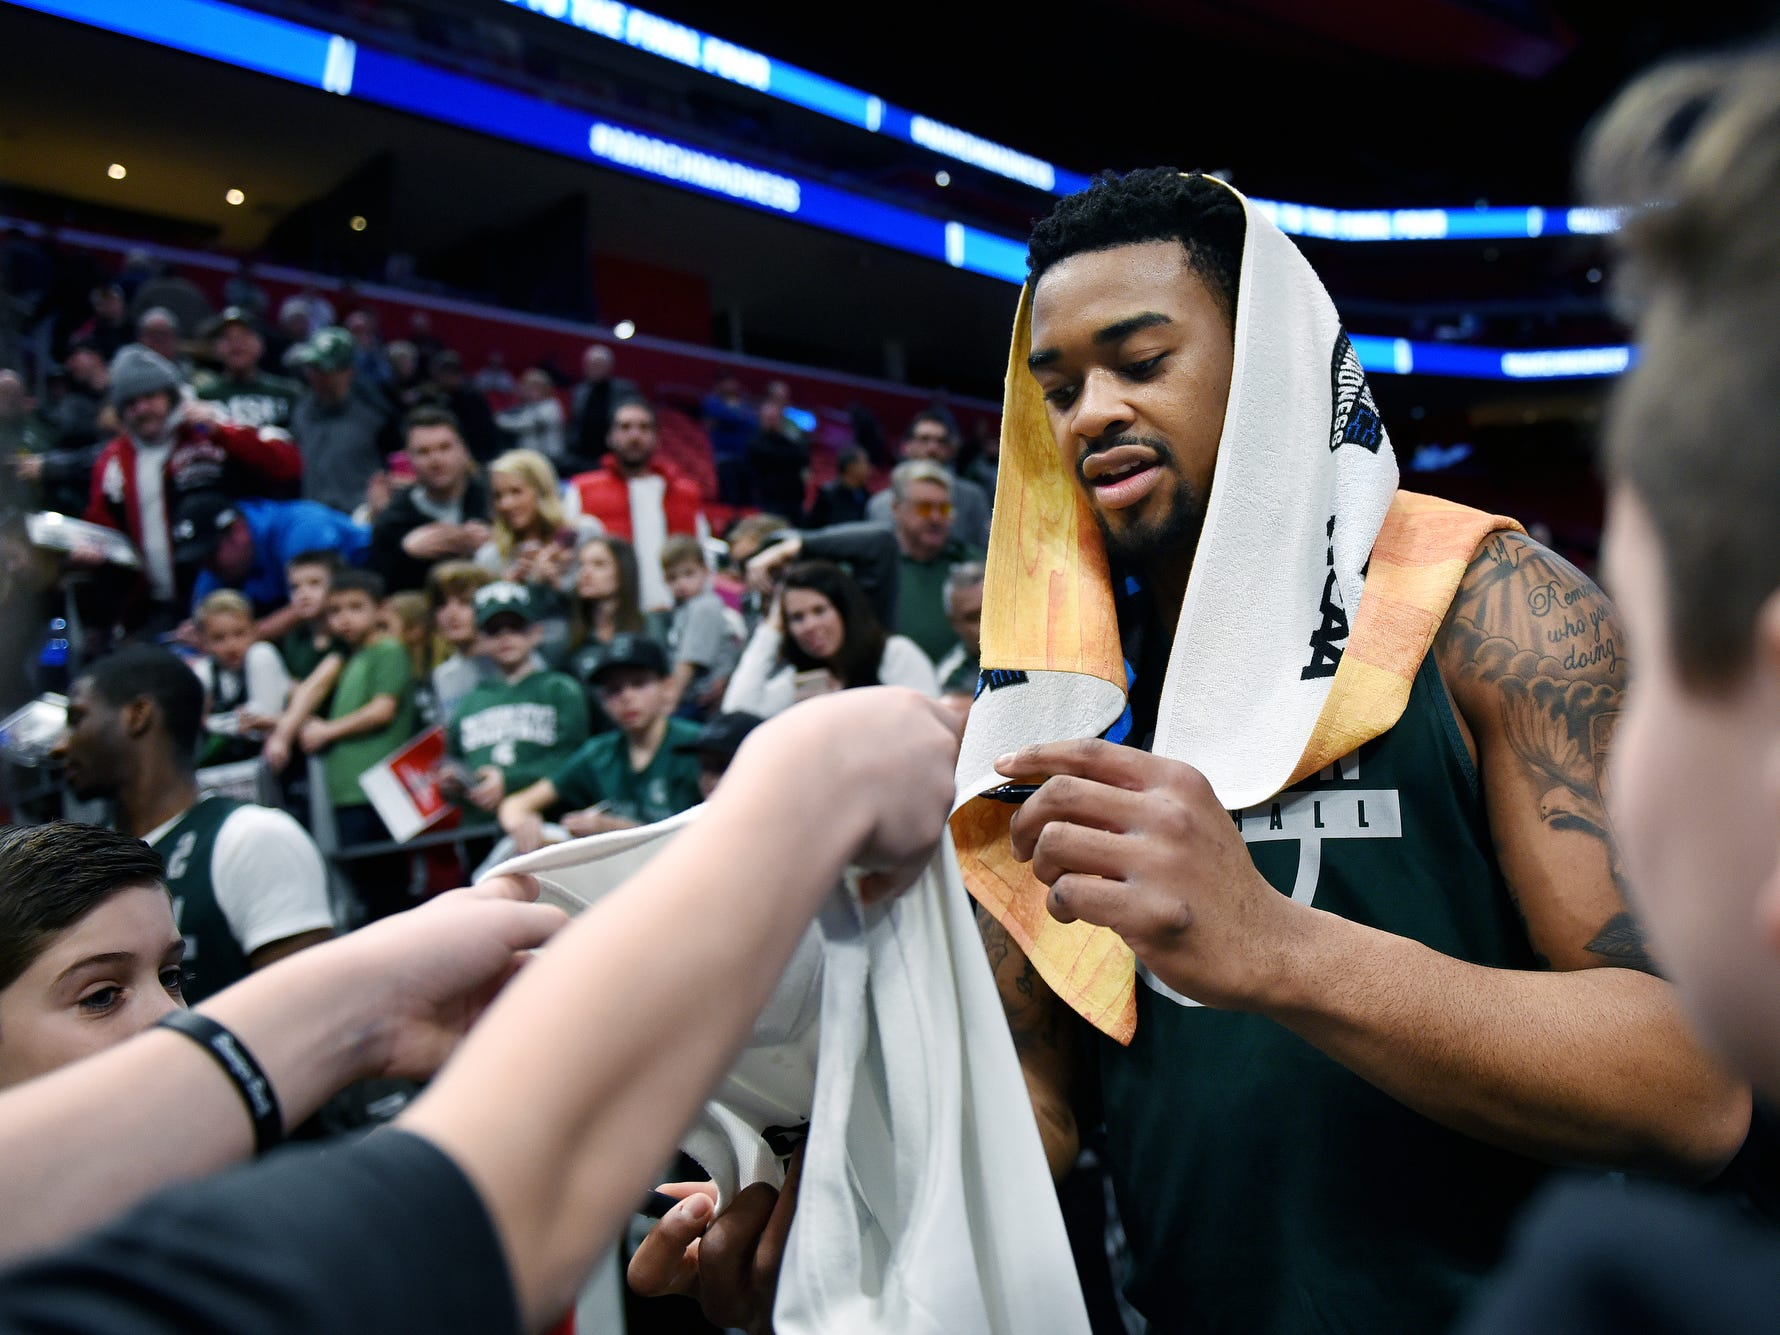 Michigan State's Nick Ward signs autographs for fans at the end of an open practice on Thursday, March 15, 2018, at the Little Caesars Arena in Detroit.